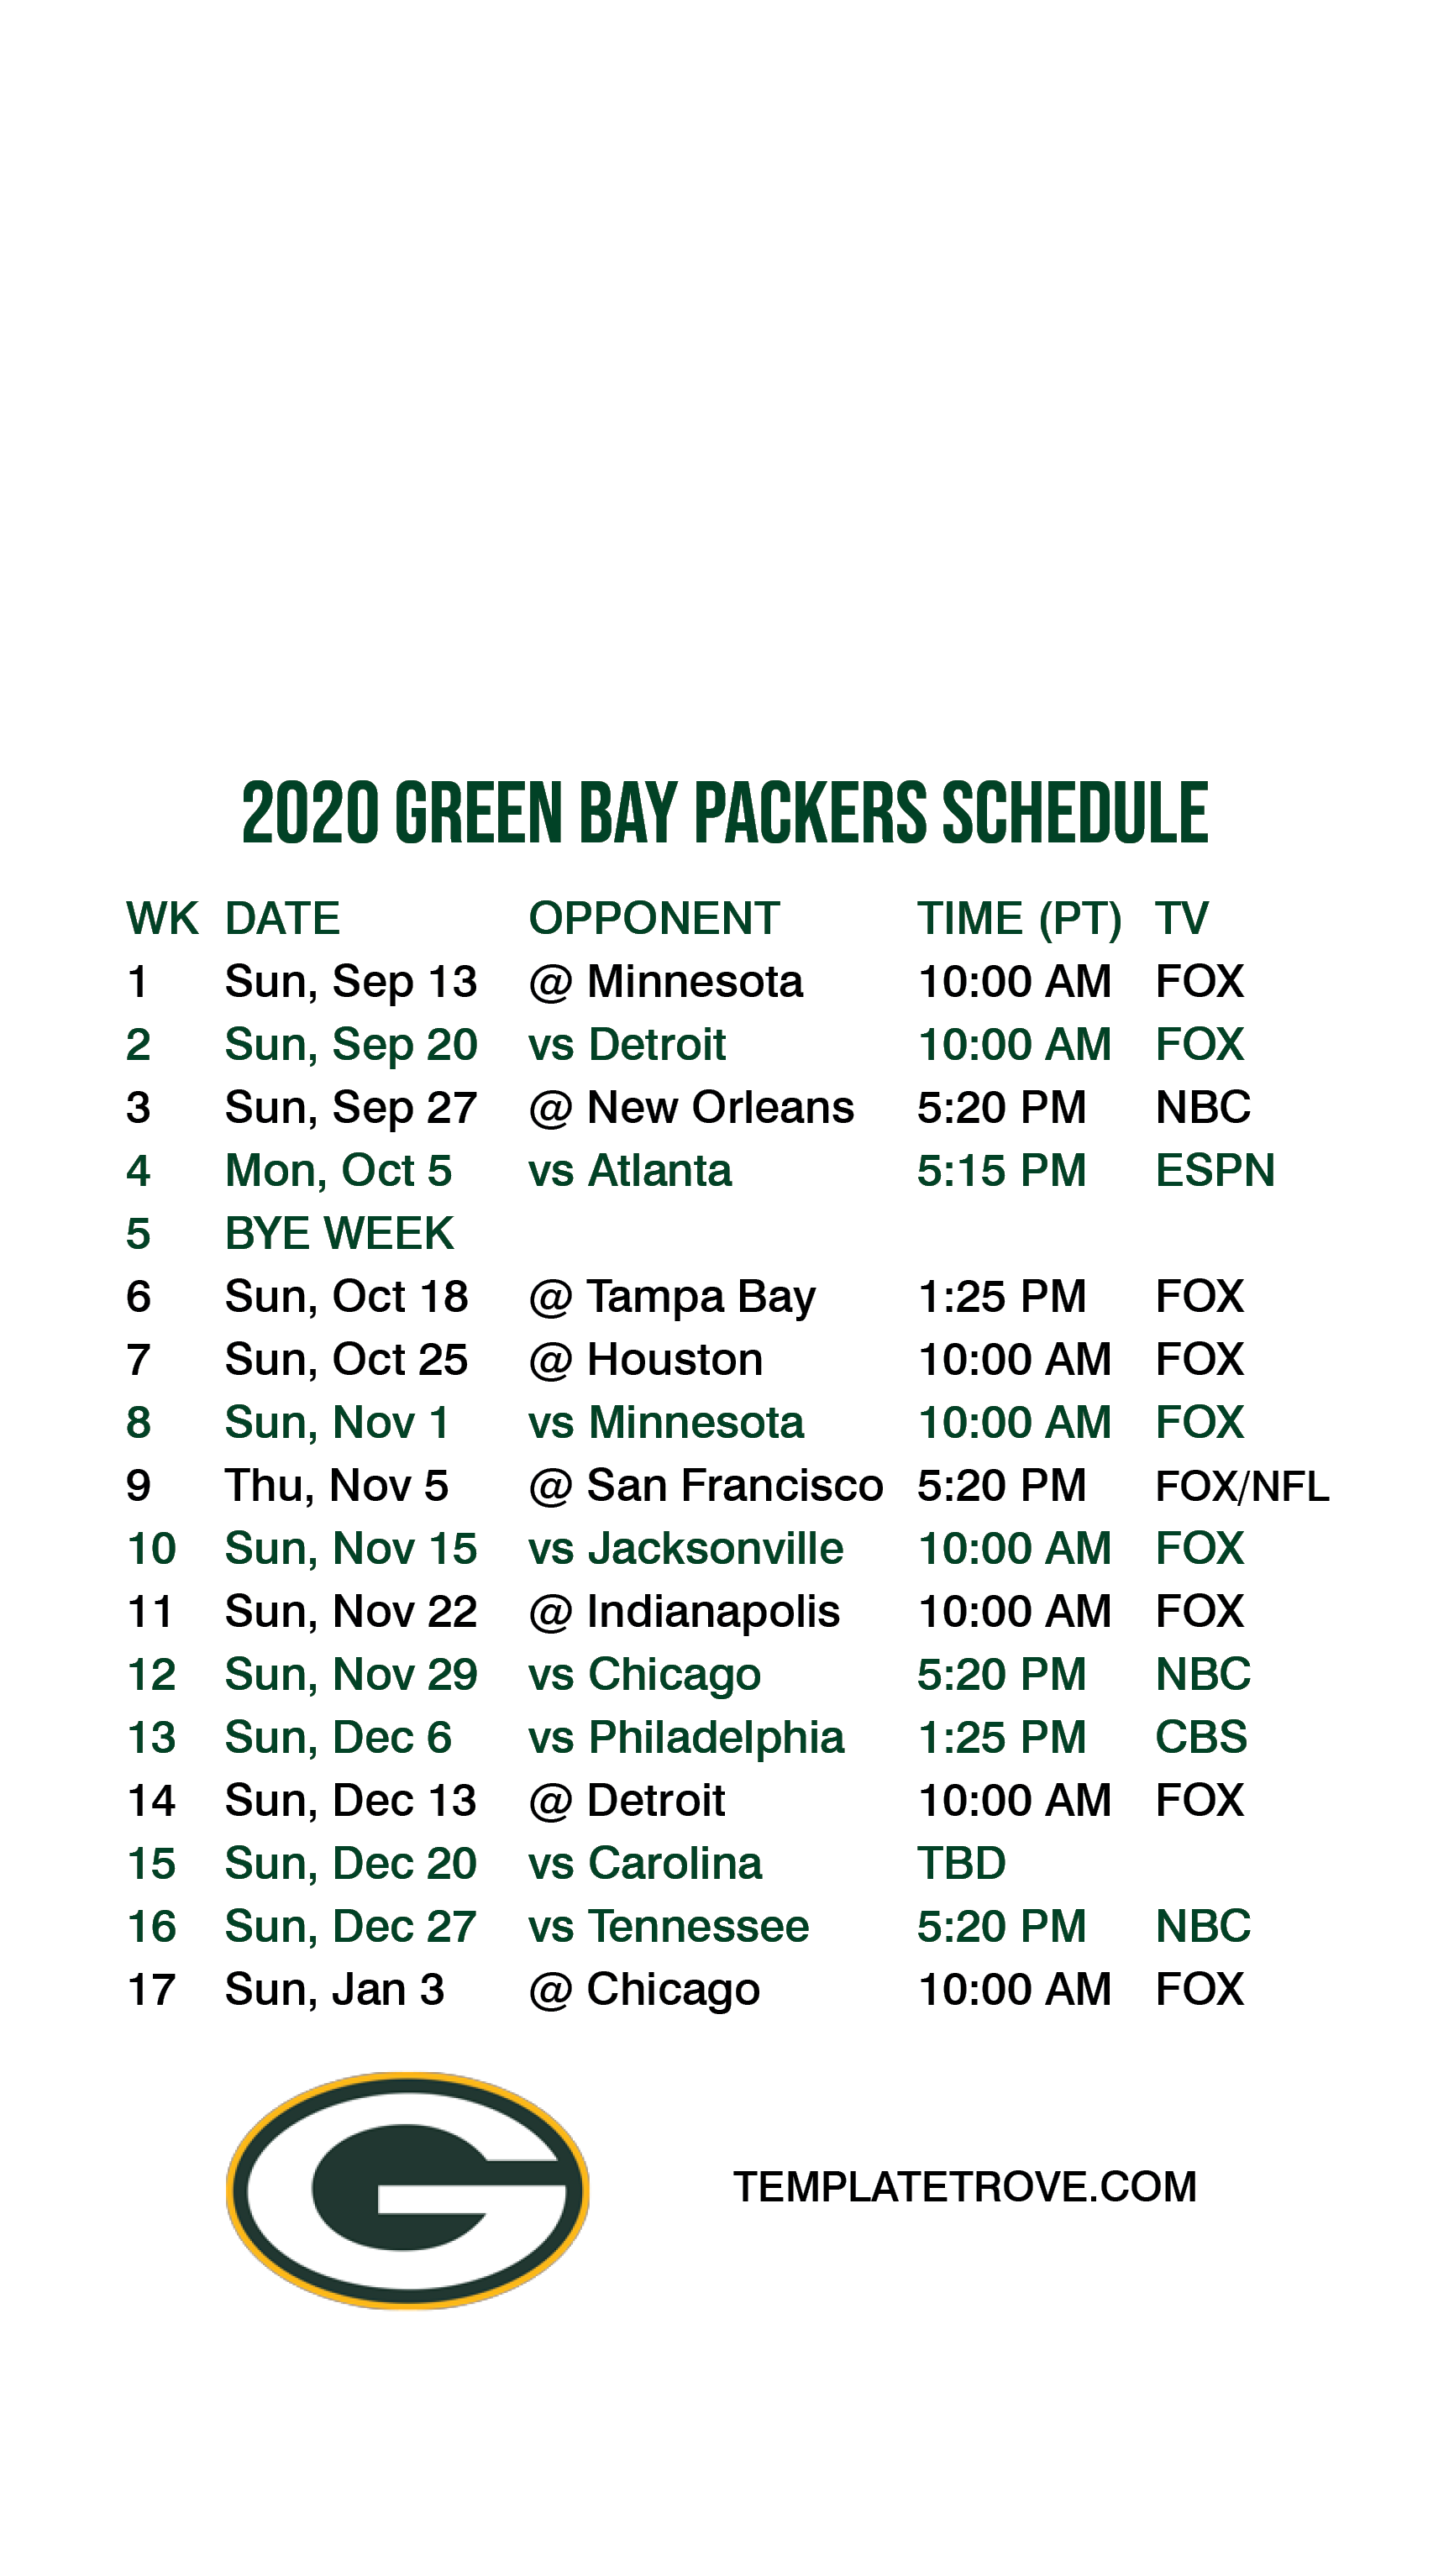 2020 2021 Green Bay Packers Lock Screen Schedule For